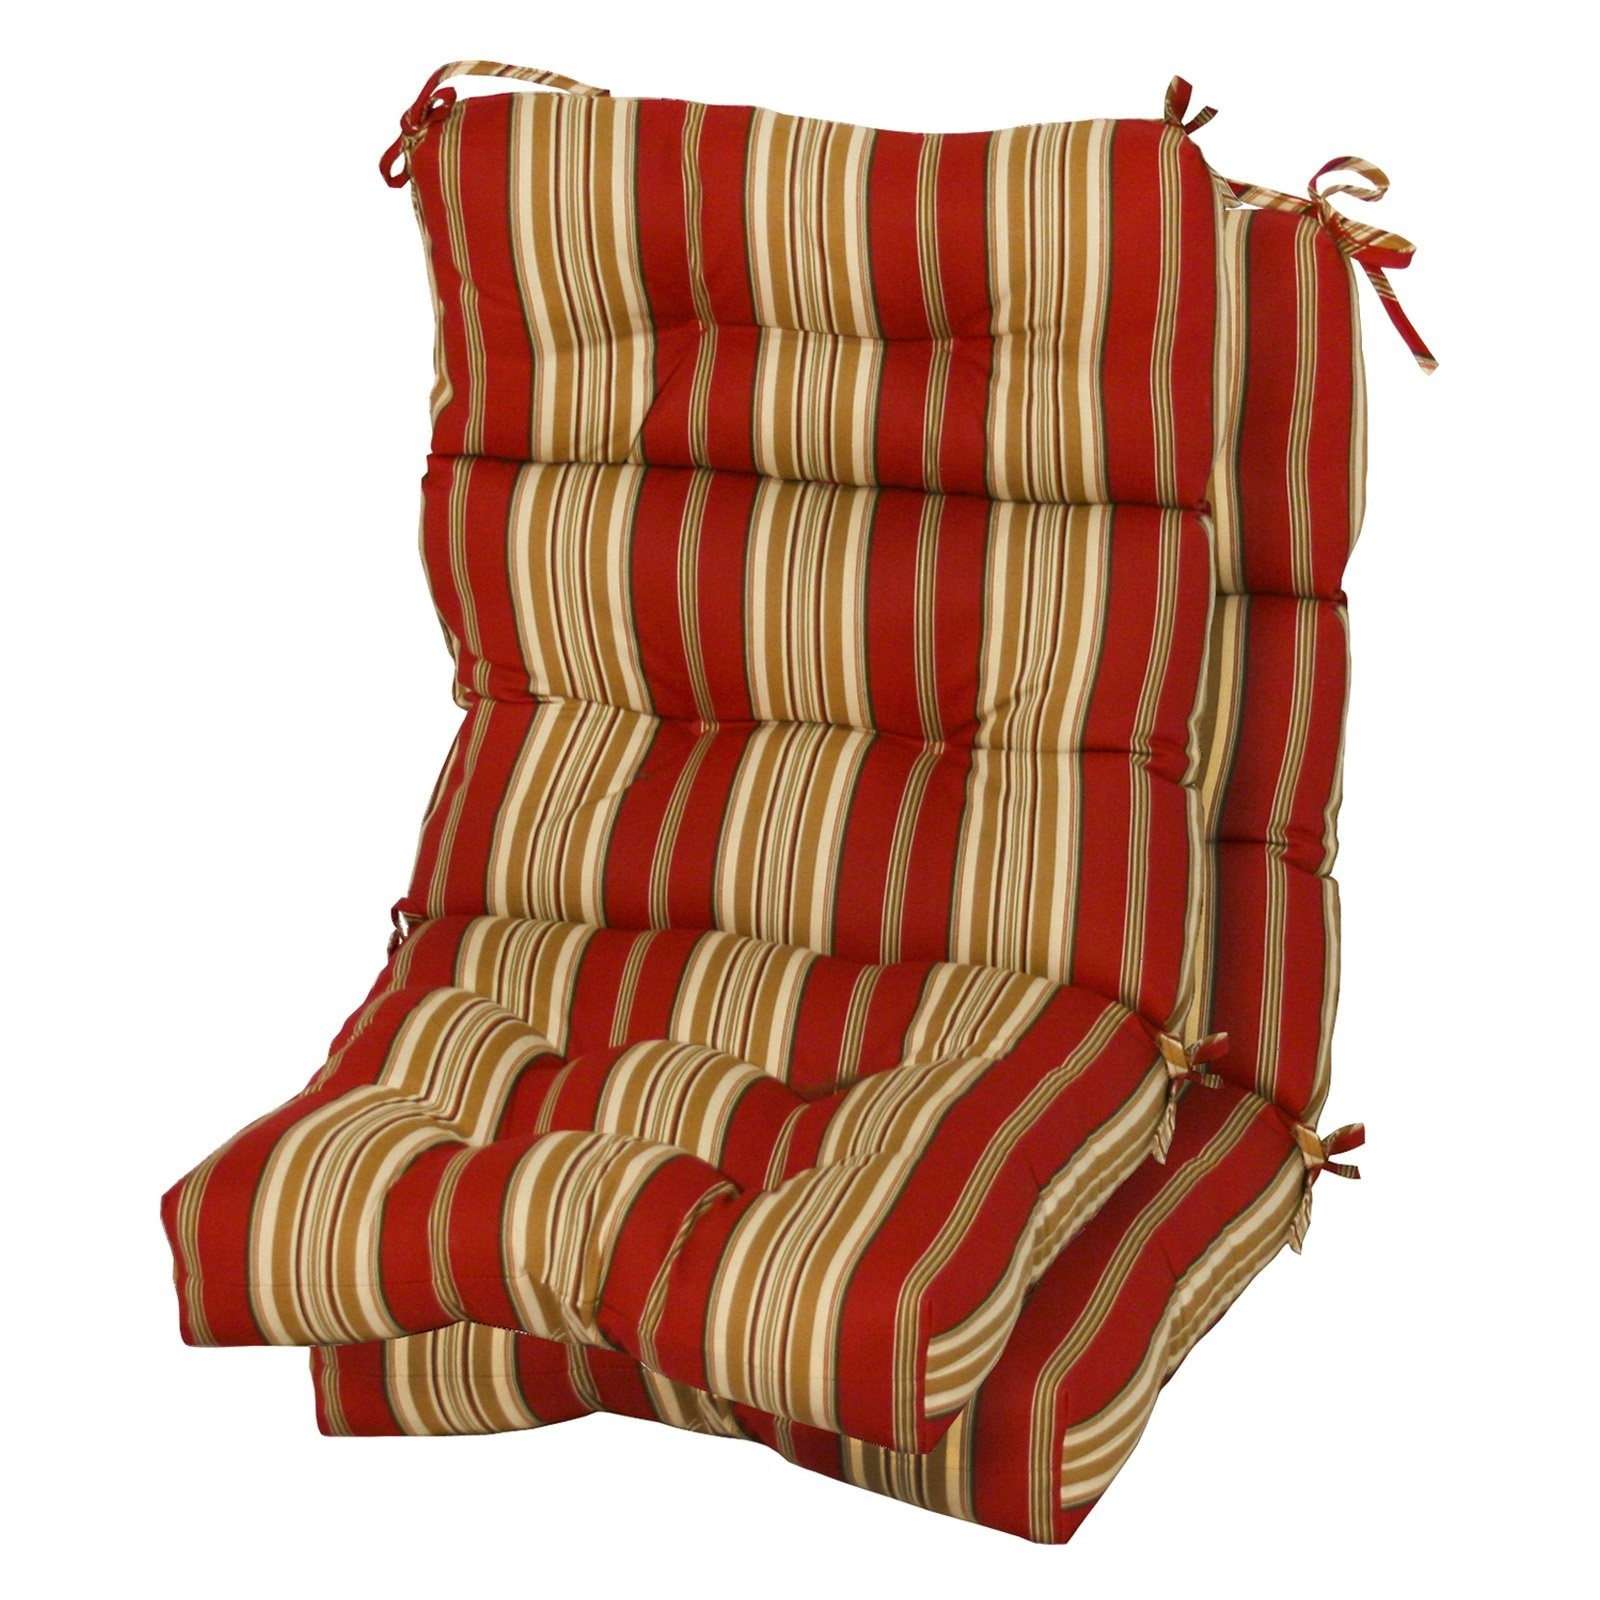 Merveilleux Greendale Home Fashions Indoor/Outdoor High Back Chair Cushions, Roma  Stripe, Set Of